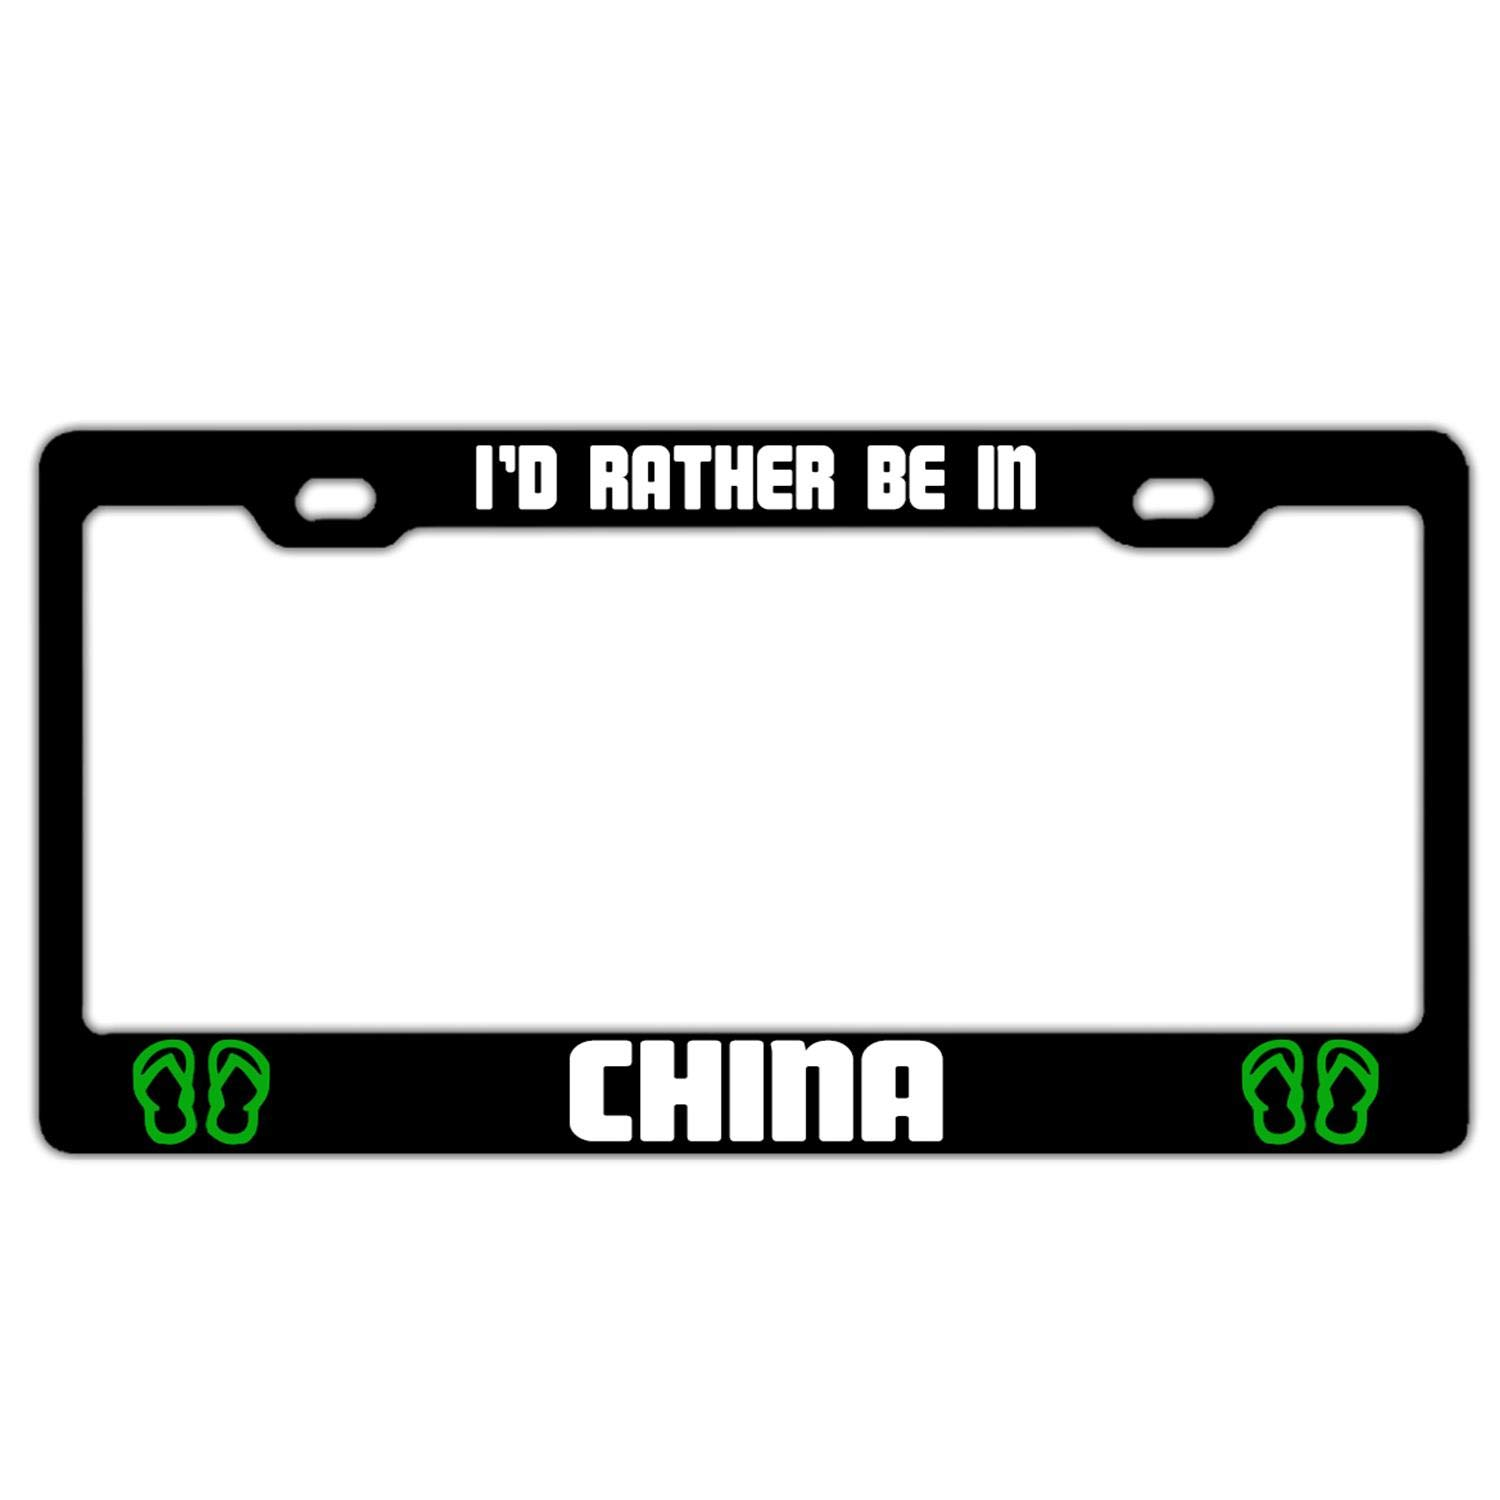 License Plate Frame Car Licenses Plate Cover License Tag Aluminum Metal License Plate Frame